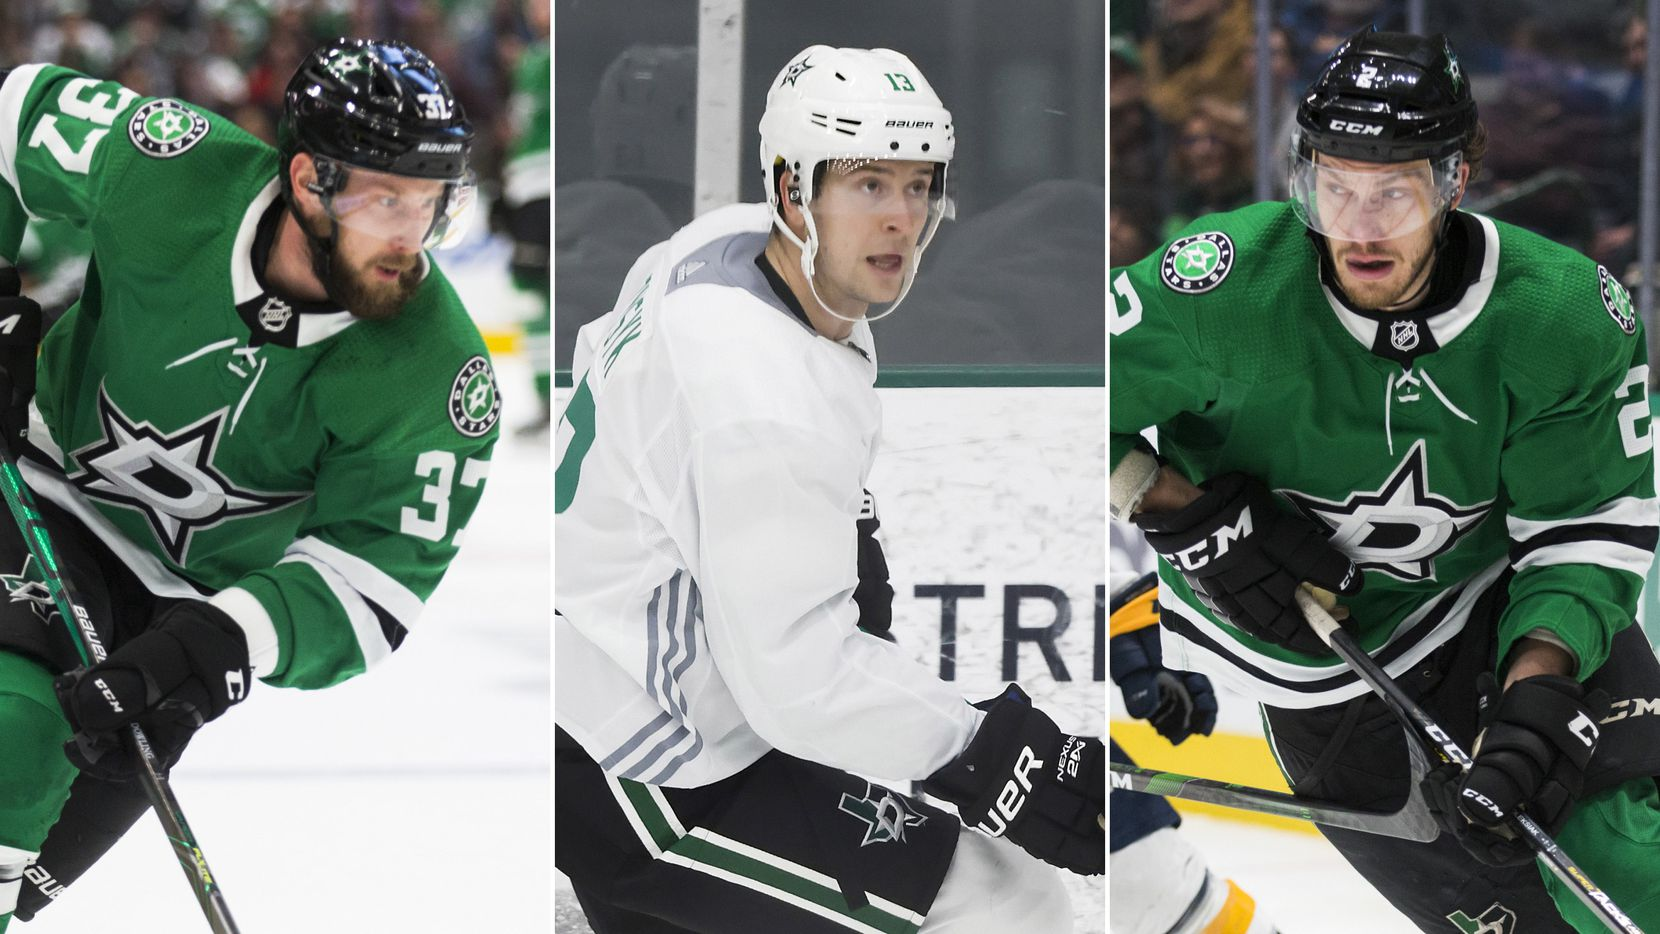 From L to R: Dallas Stars players Justin Dowling, Mark Pysyk, Jamie Oleksiak.